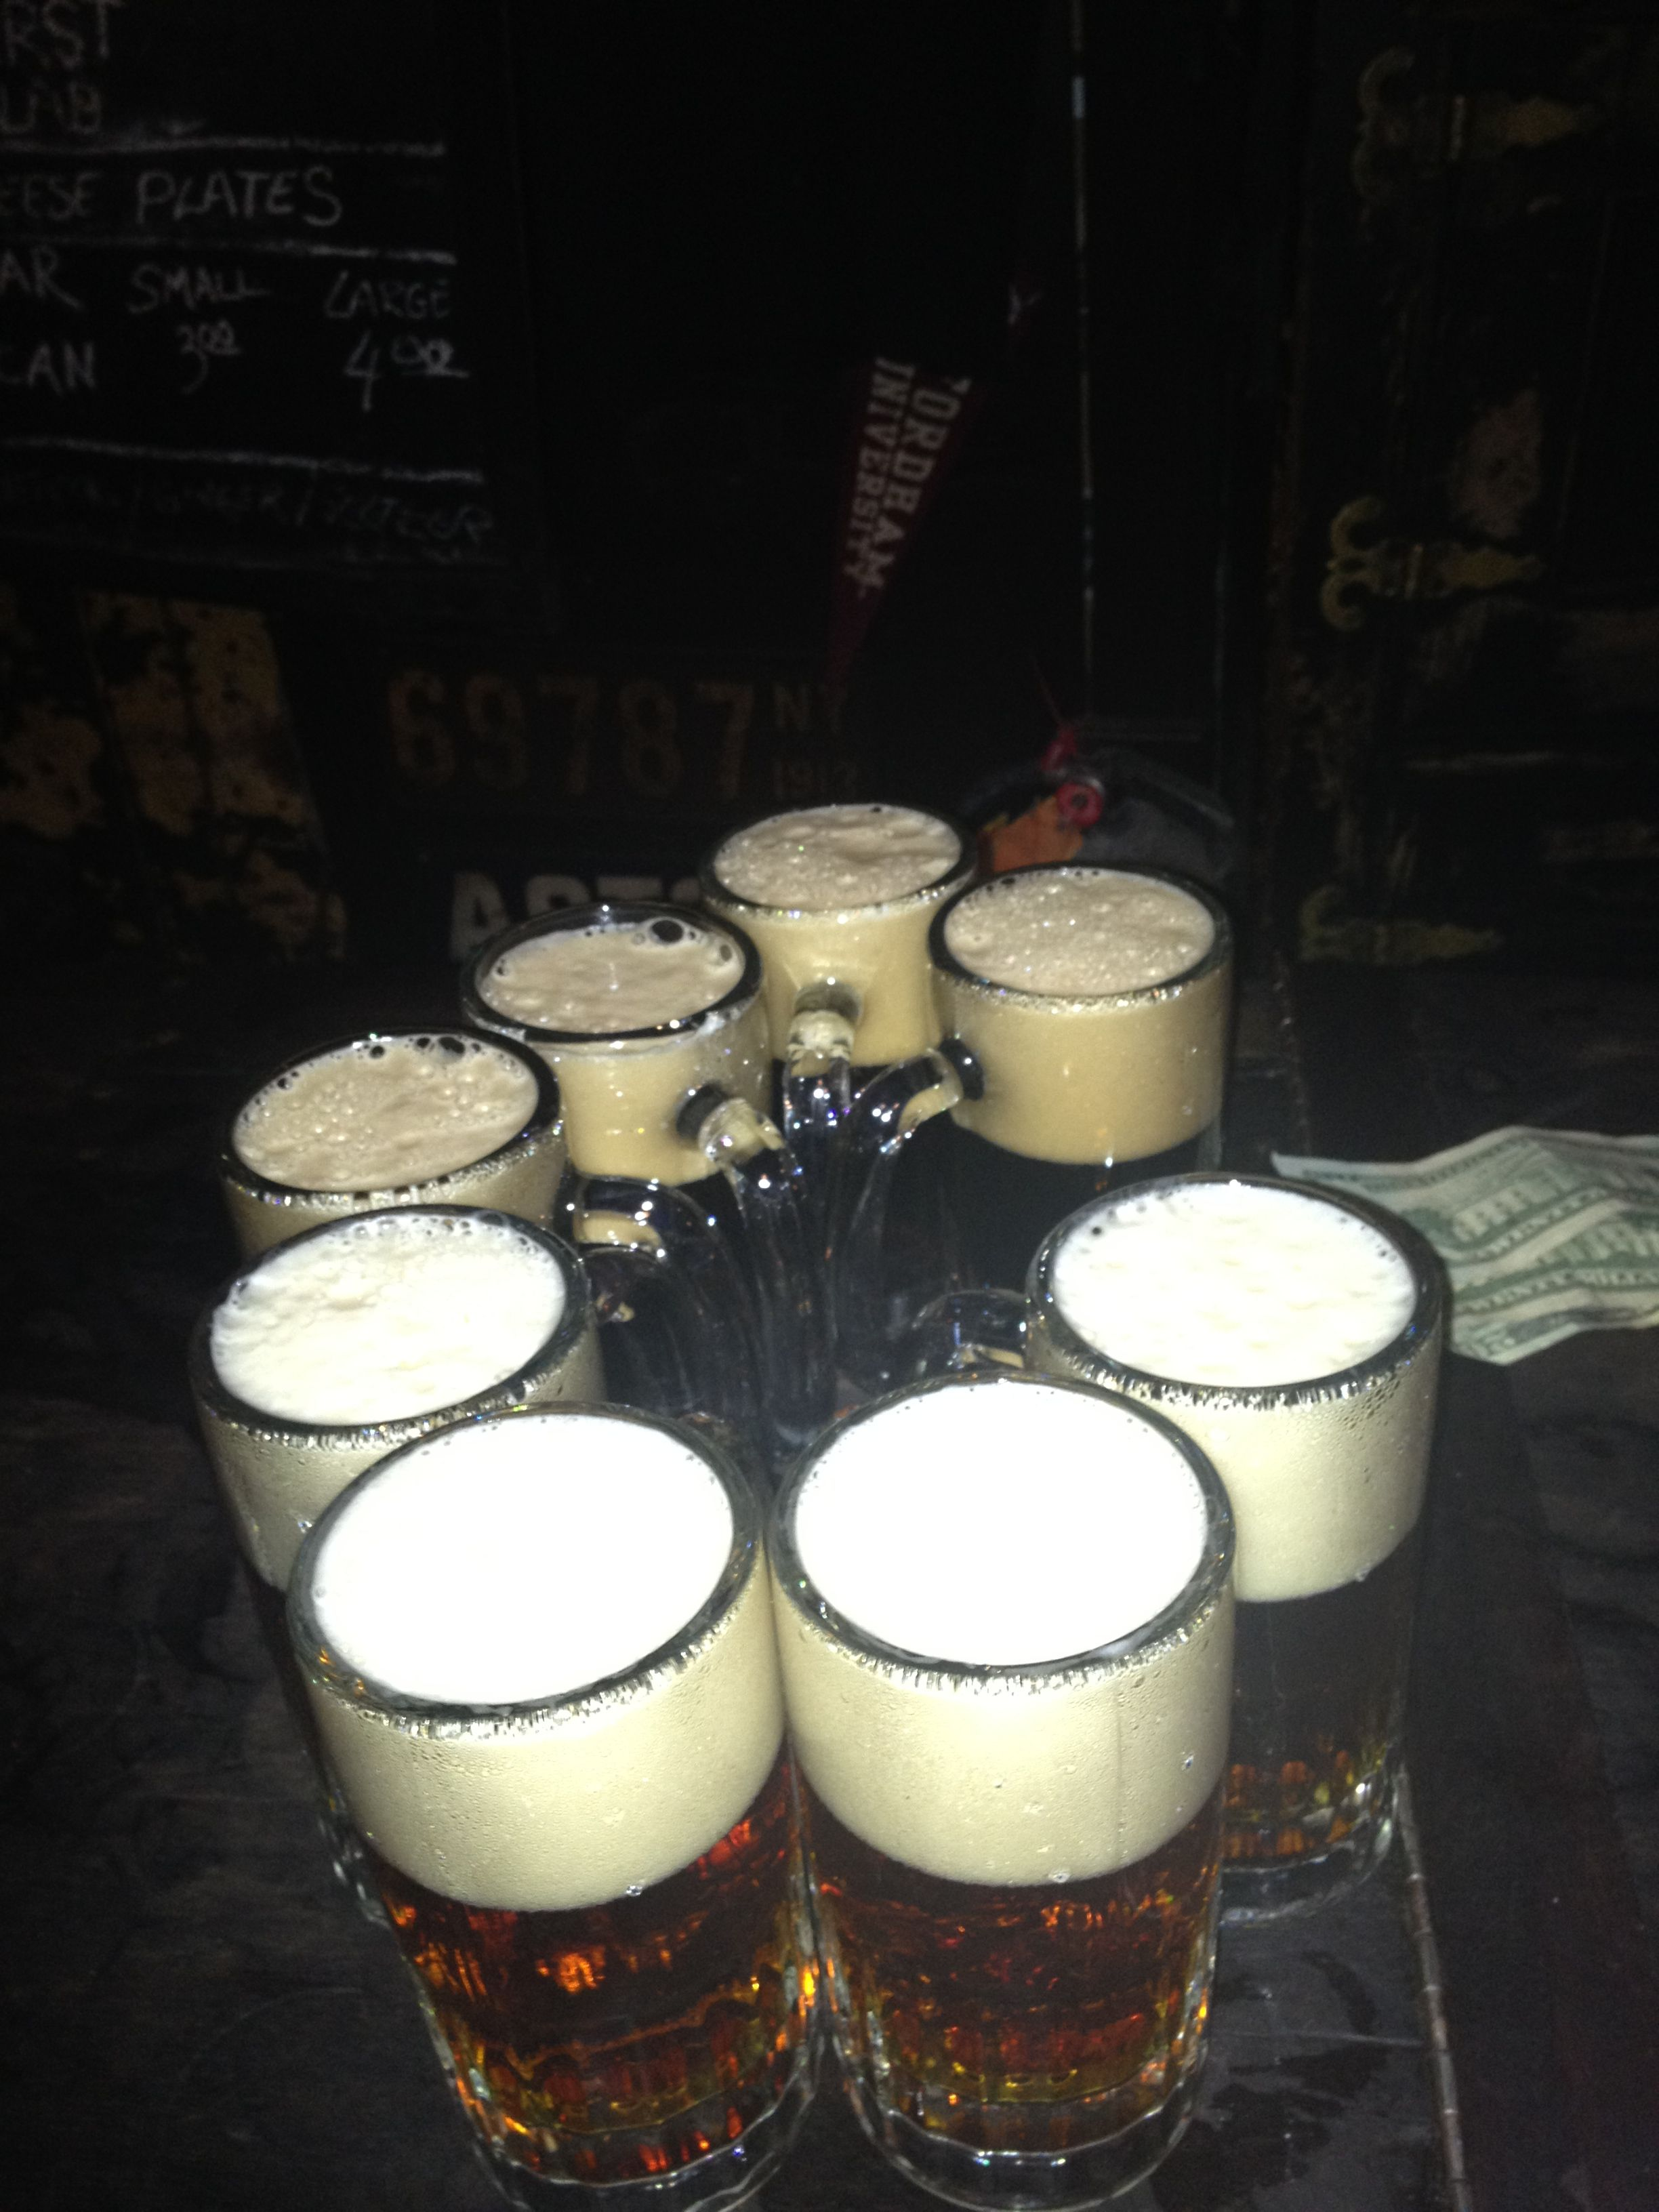 Round at McSorley's